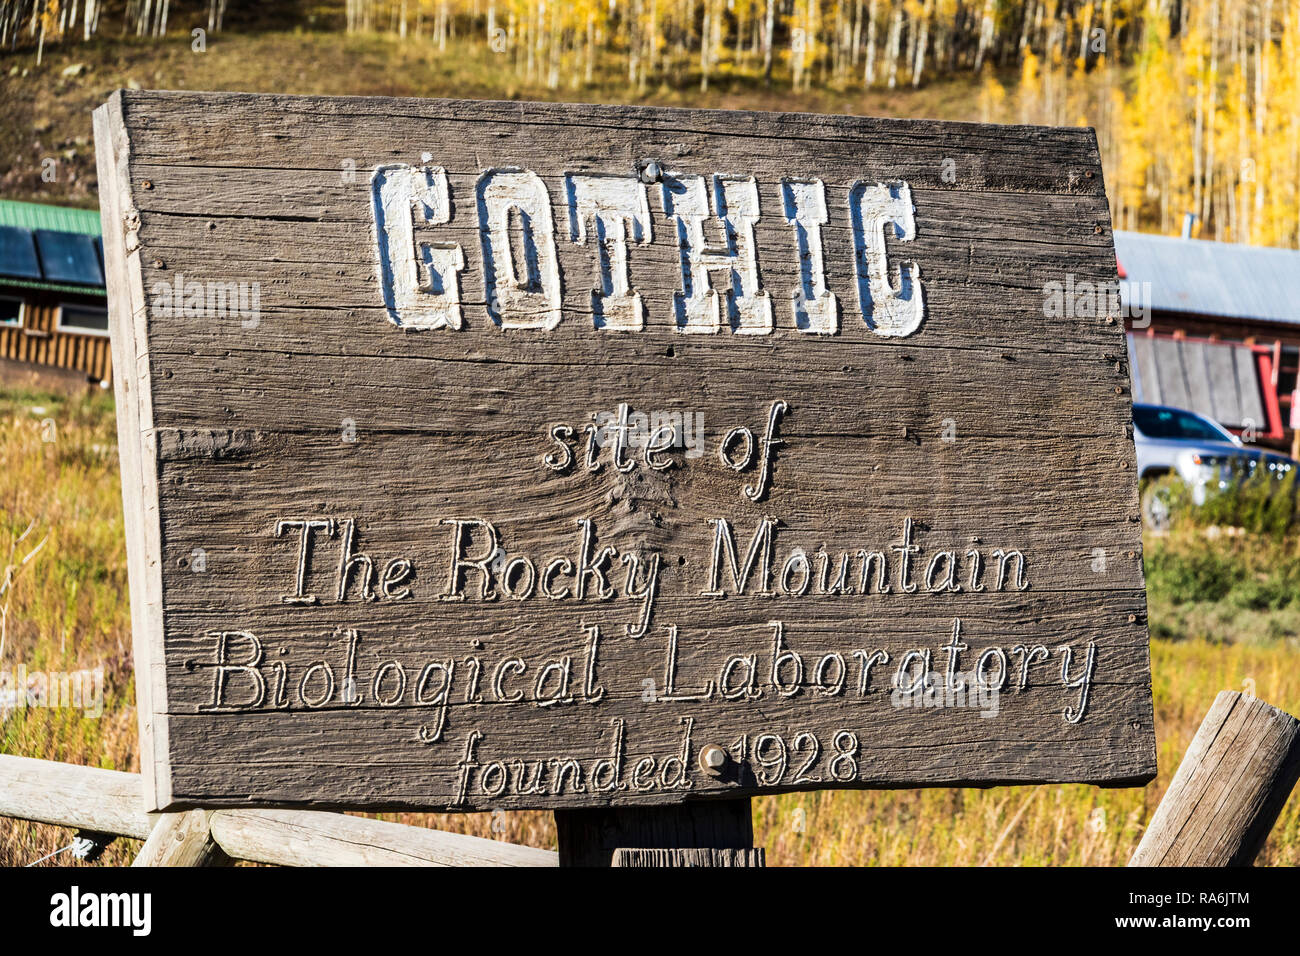 Rocky Mountains Biological Library area along Gothic Road in Colorado. - Stock Image